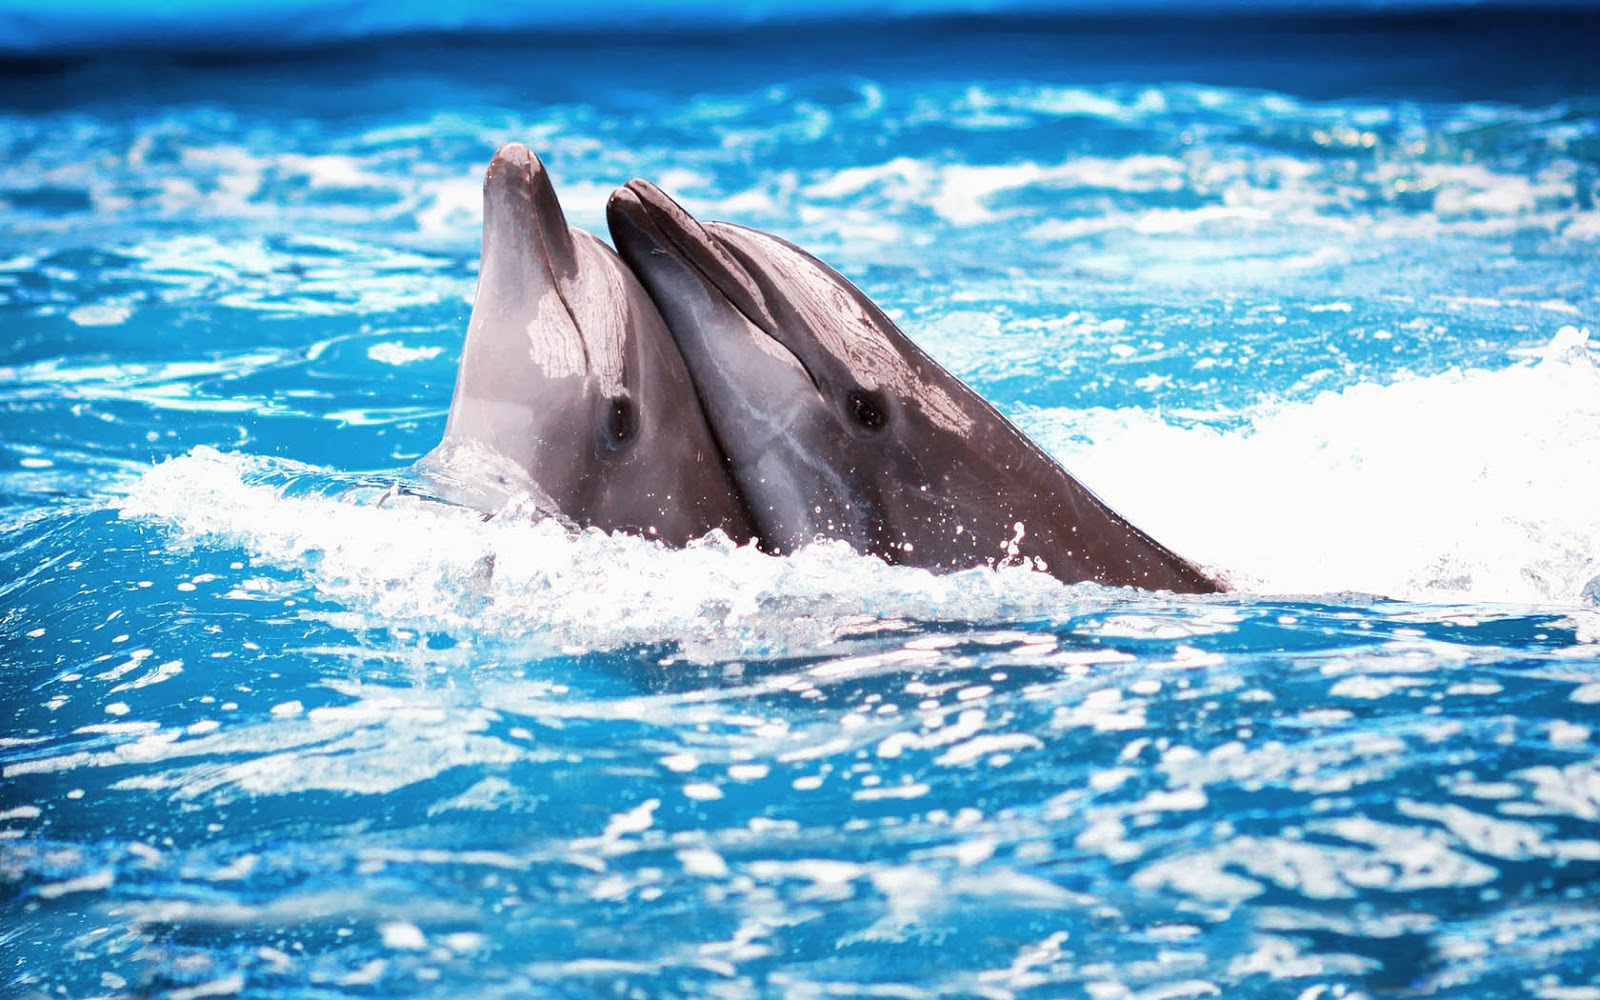 Tempest reborn hd dolphins wallpapers and photos wallpaper with two cuddling dolphins in the swimming pool voltagebd Gallery